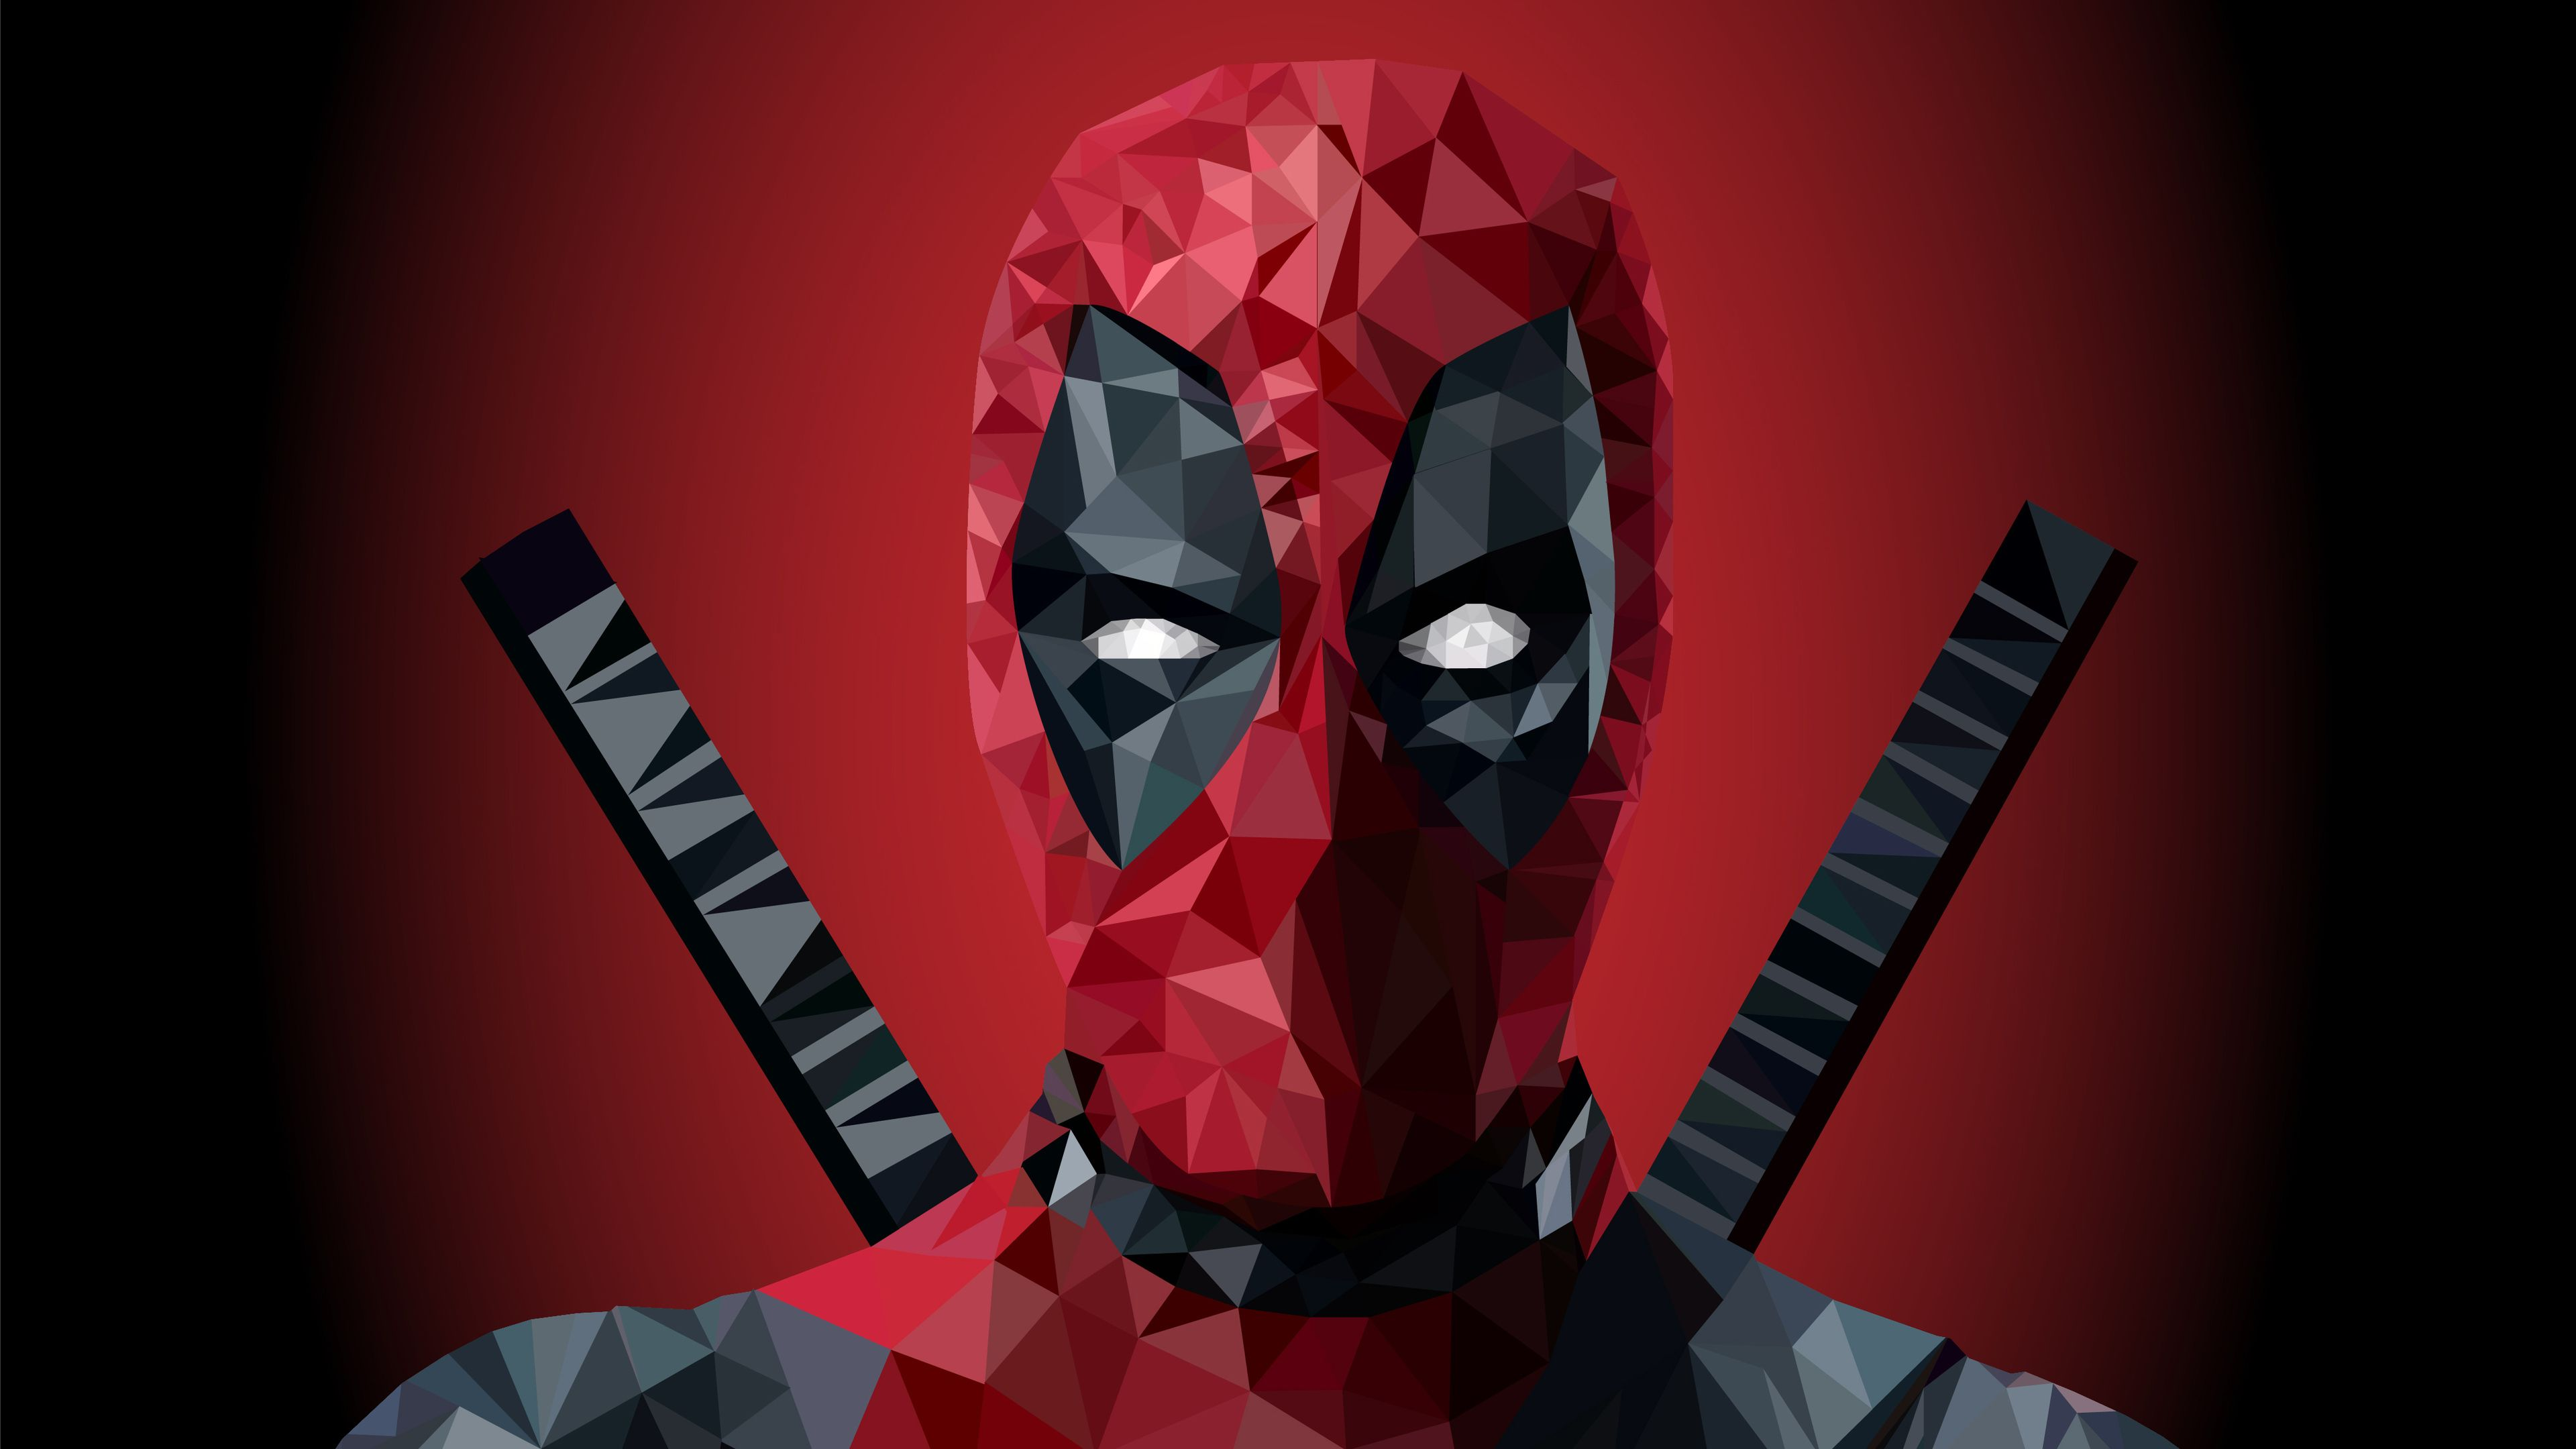 Deadpool Low Poly Art 4k Superheroes Wallpapers Hd Wallpapers Digital Art Wallpapers Deviantart Wallpapers Deadpool Wallpaper Low Poly Art Deadpool Artwork